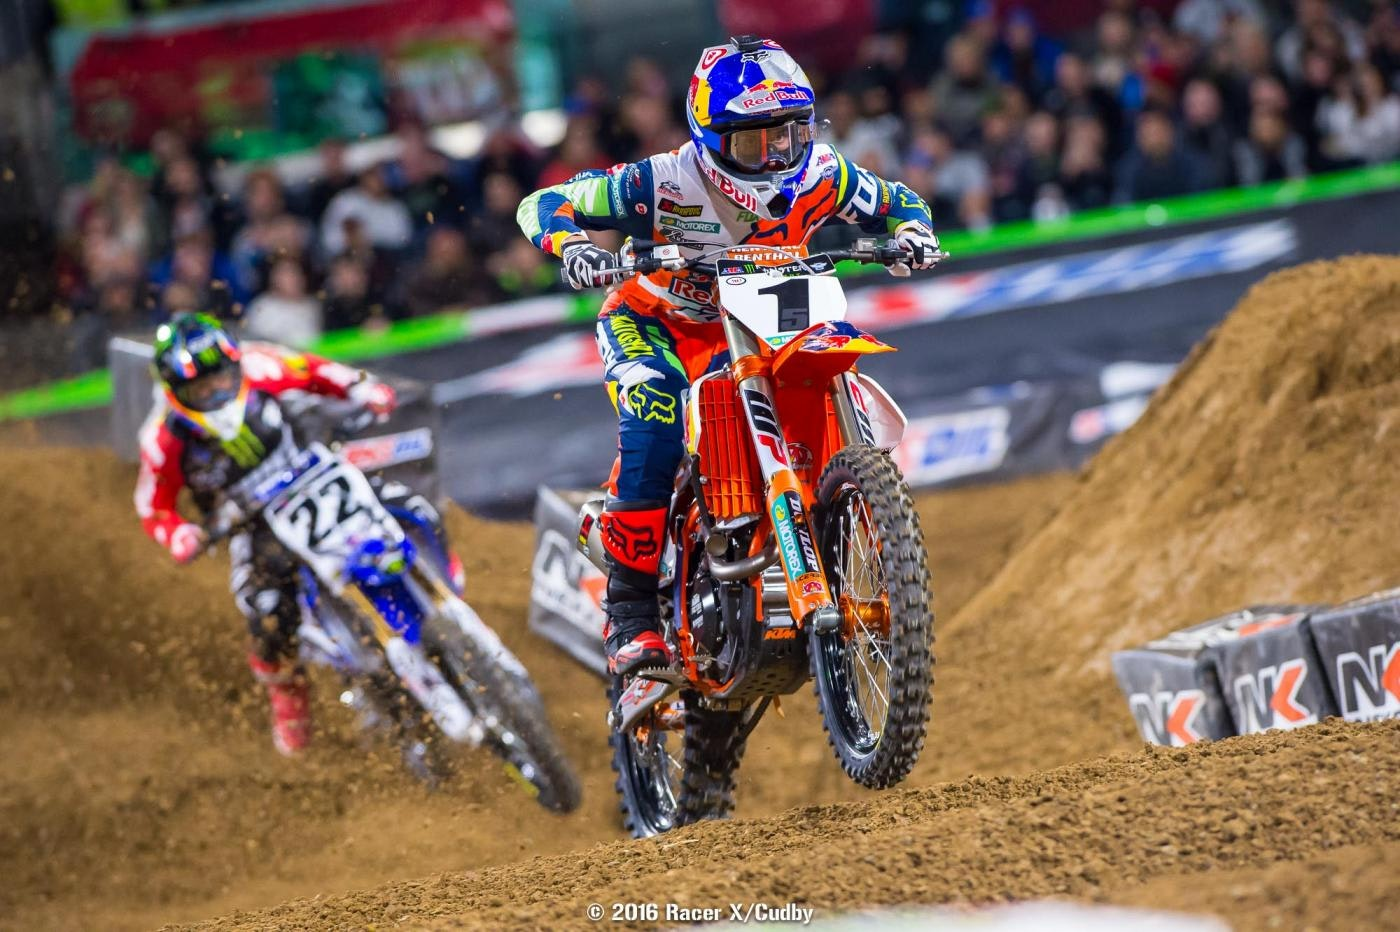 Win number 1 for Ryan Dungey on the young season.